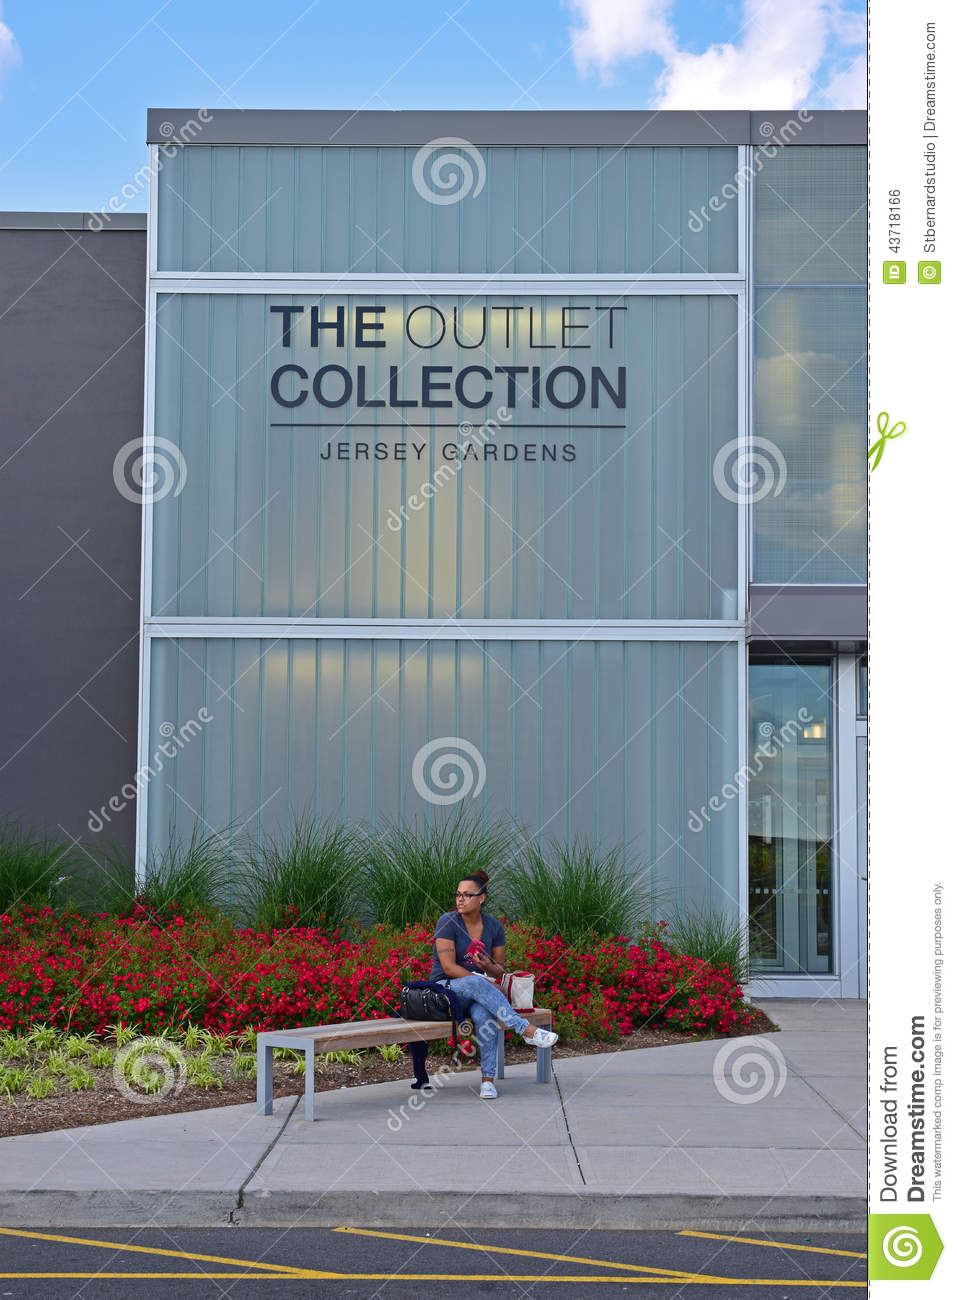 Largest collection of arms hands cartoon vector - The outlet collection jersey gardens ...